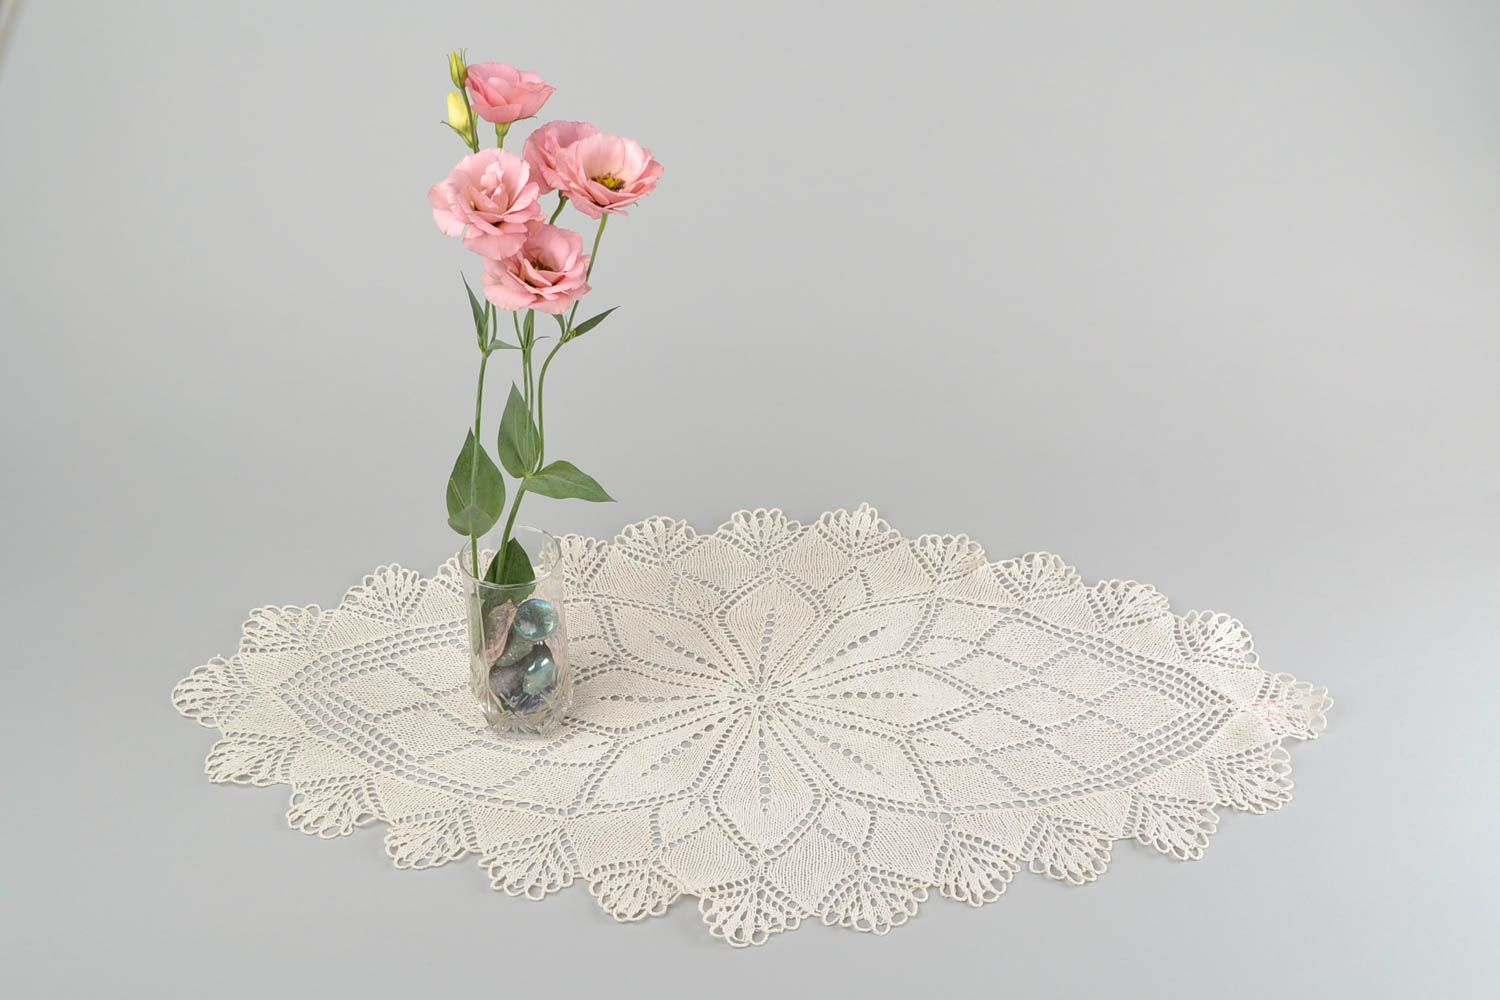 Notice: Undefined variable: cat in /home/newmadeheart/prod/cache/volt/%%home%%newmadeheart%%prod%%app%%views%%product%%index.volt.php on line 139  Handmade knitted napkin decorative lace napkin for coffee table interior ideas - MADEheart.com